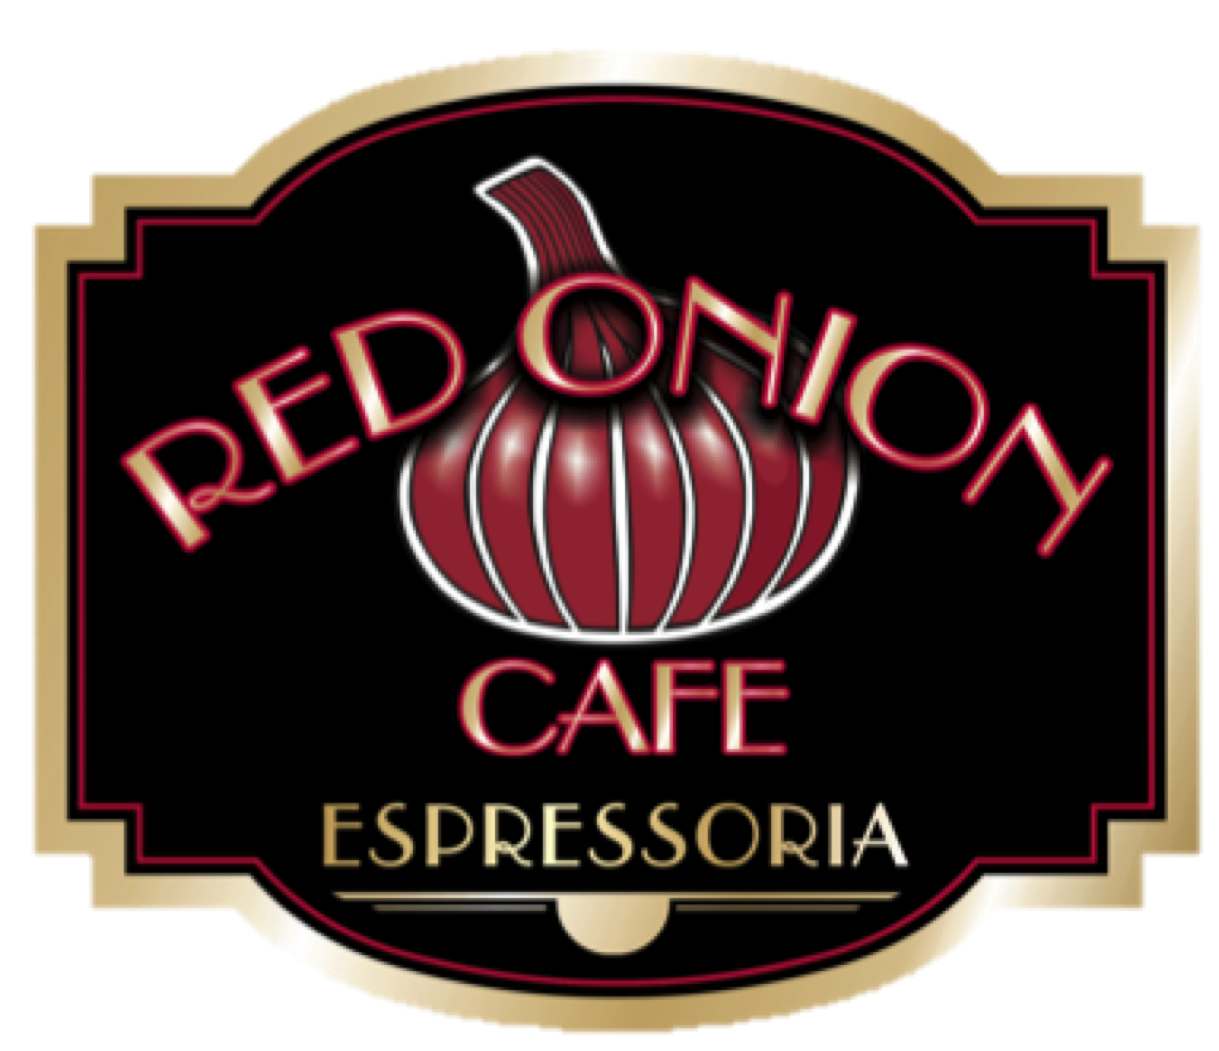 Red Onion Espressoria